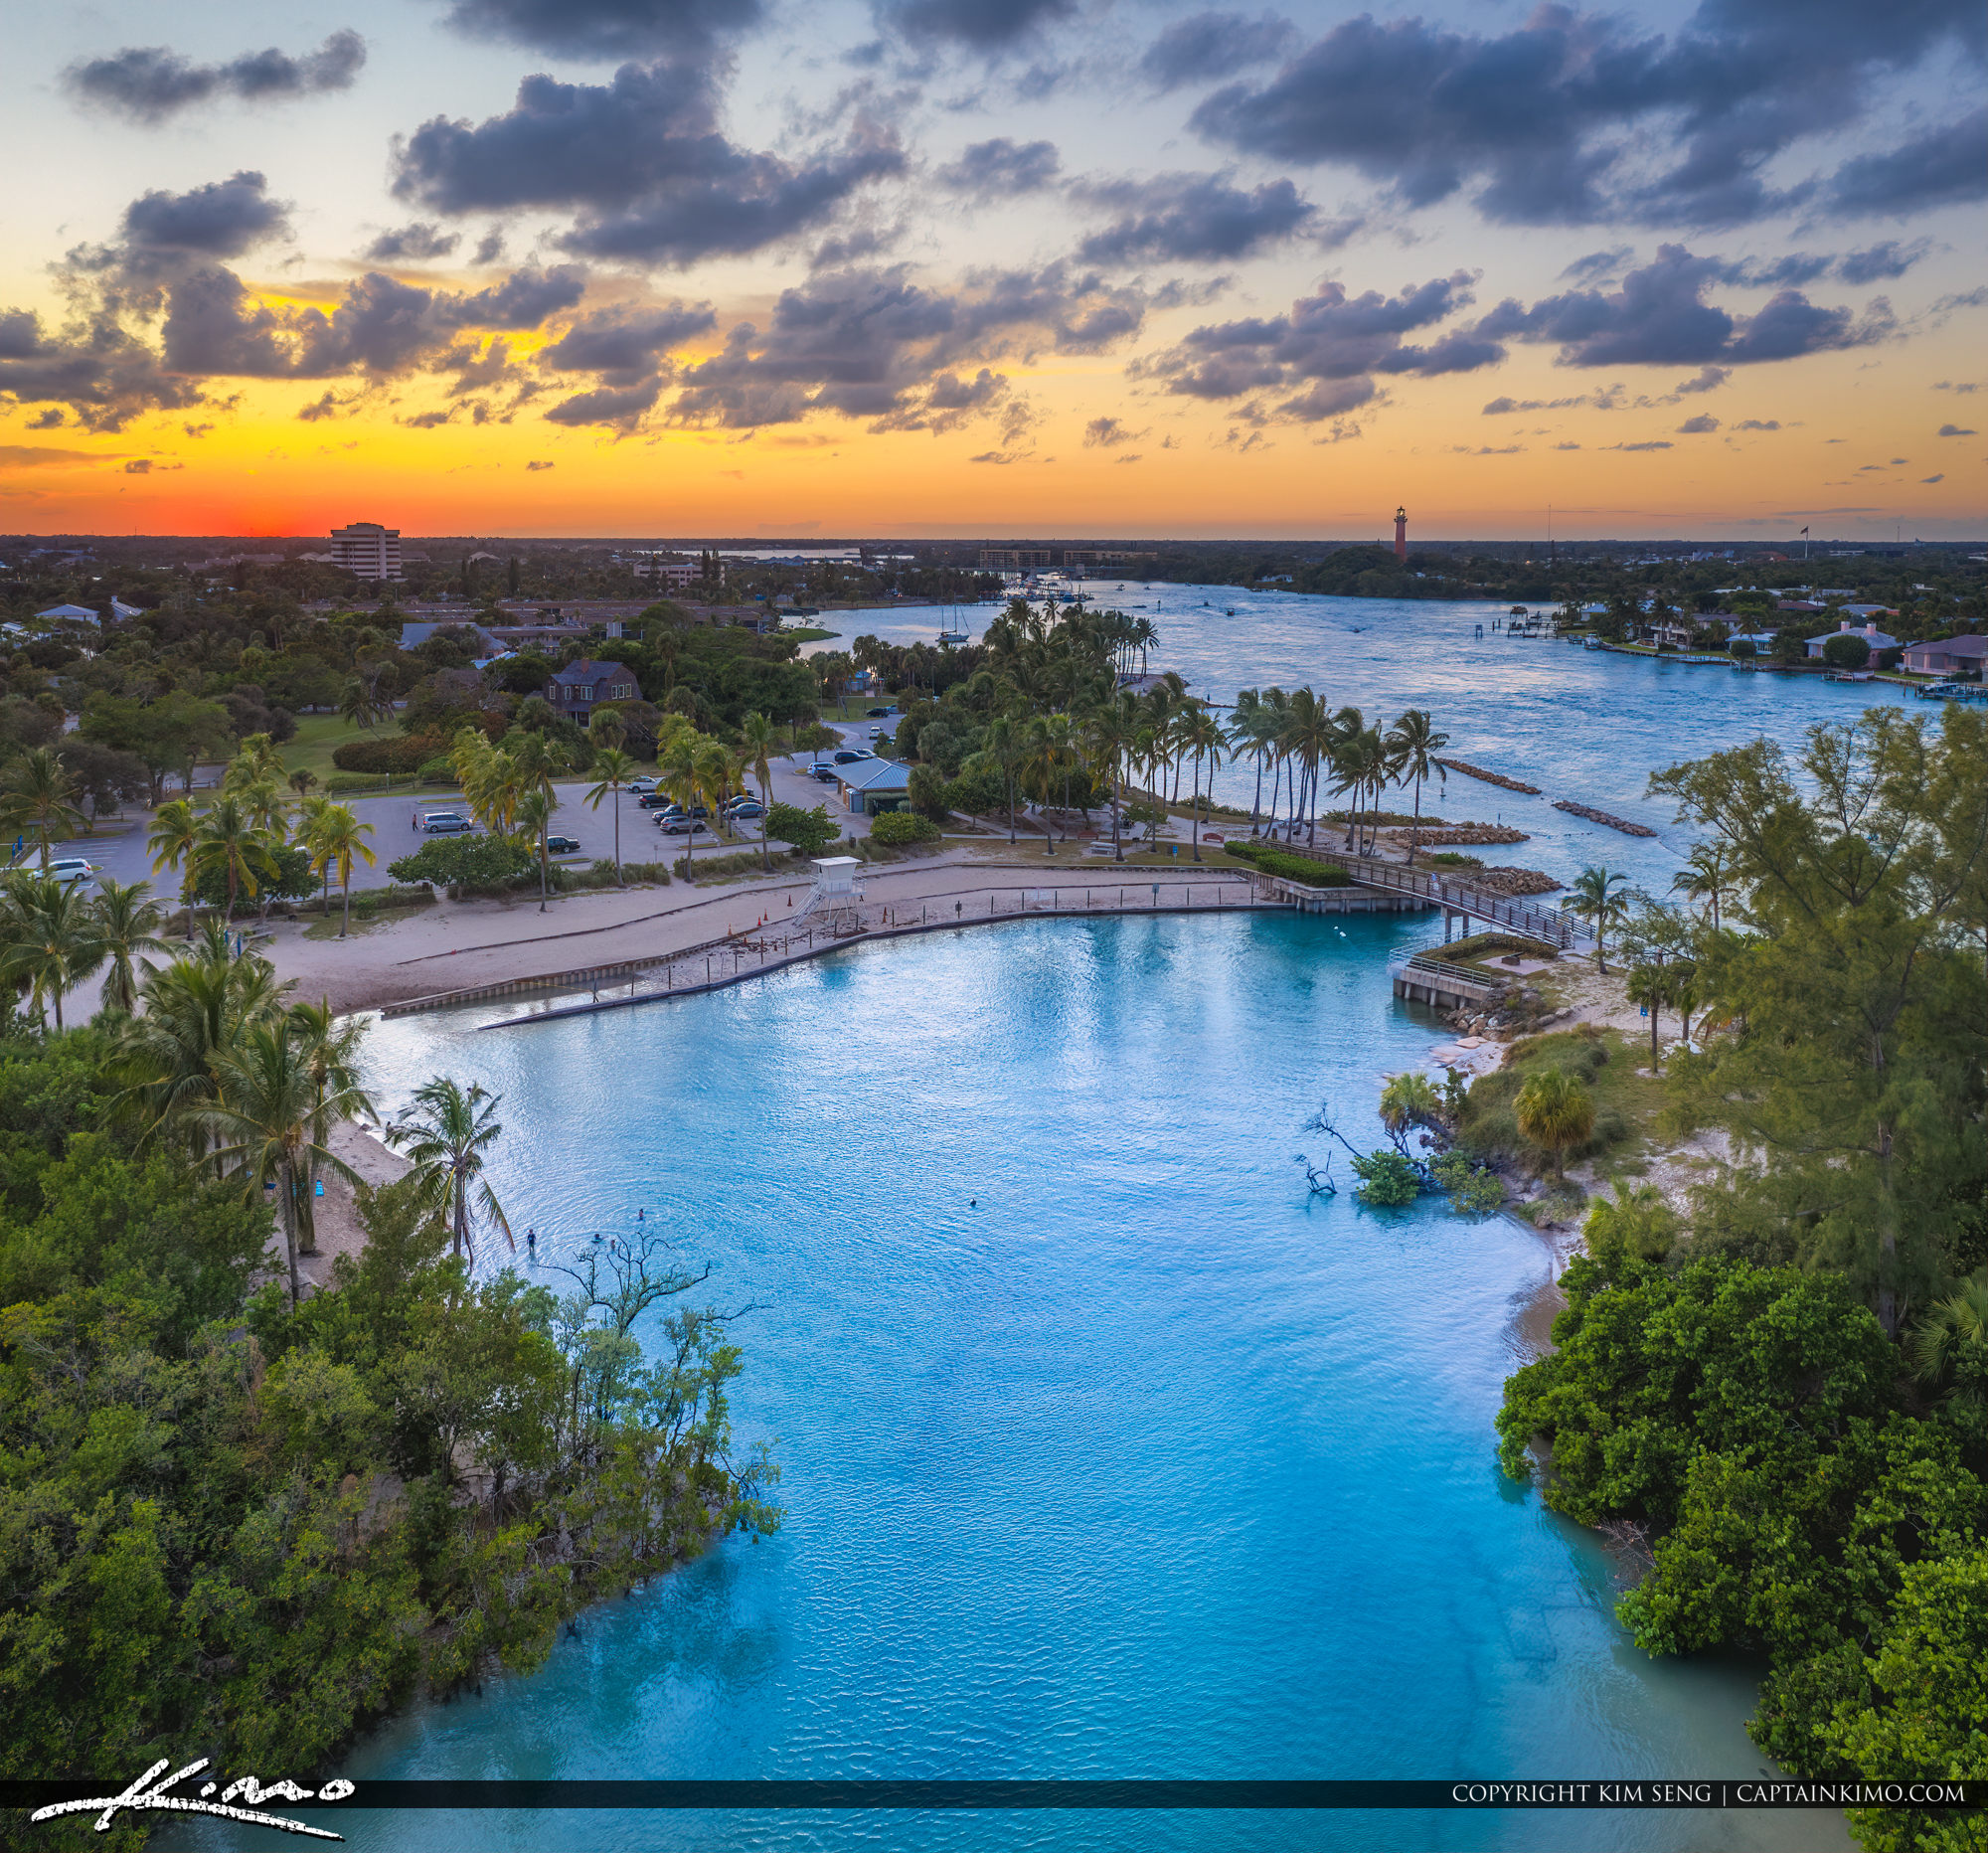 Blue Lagoon Dubois Park Jupiter Florida Sunset